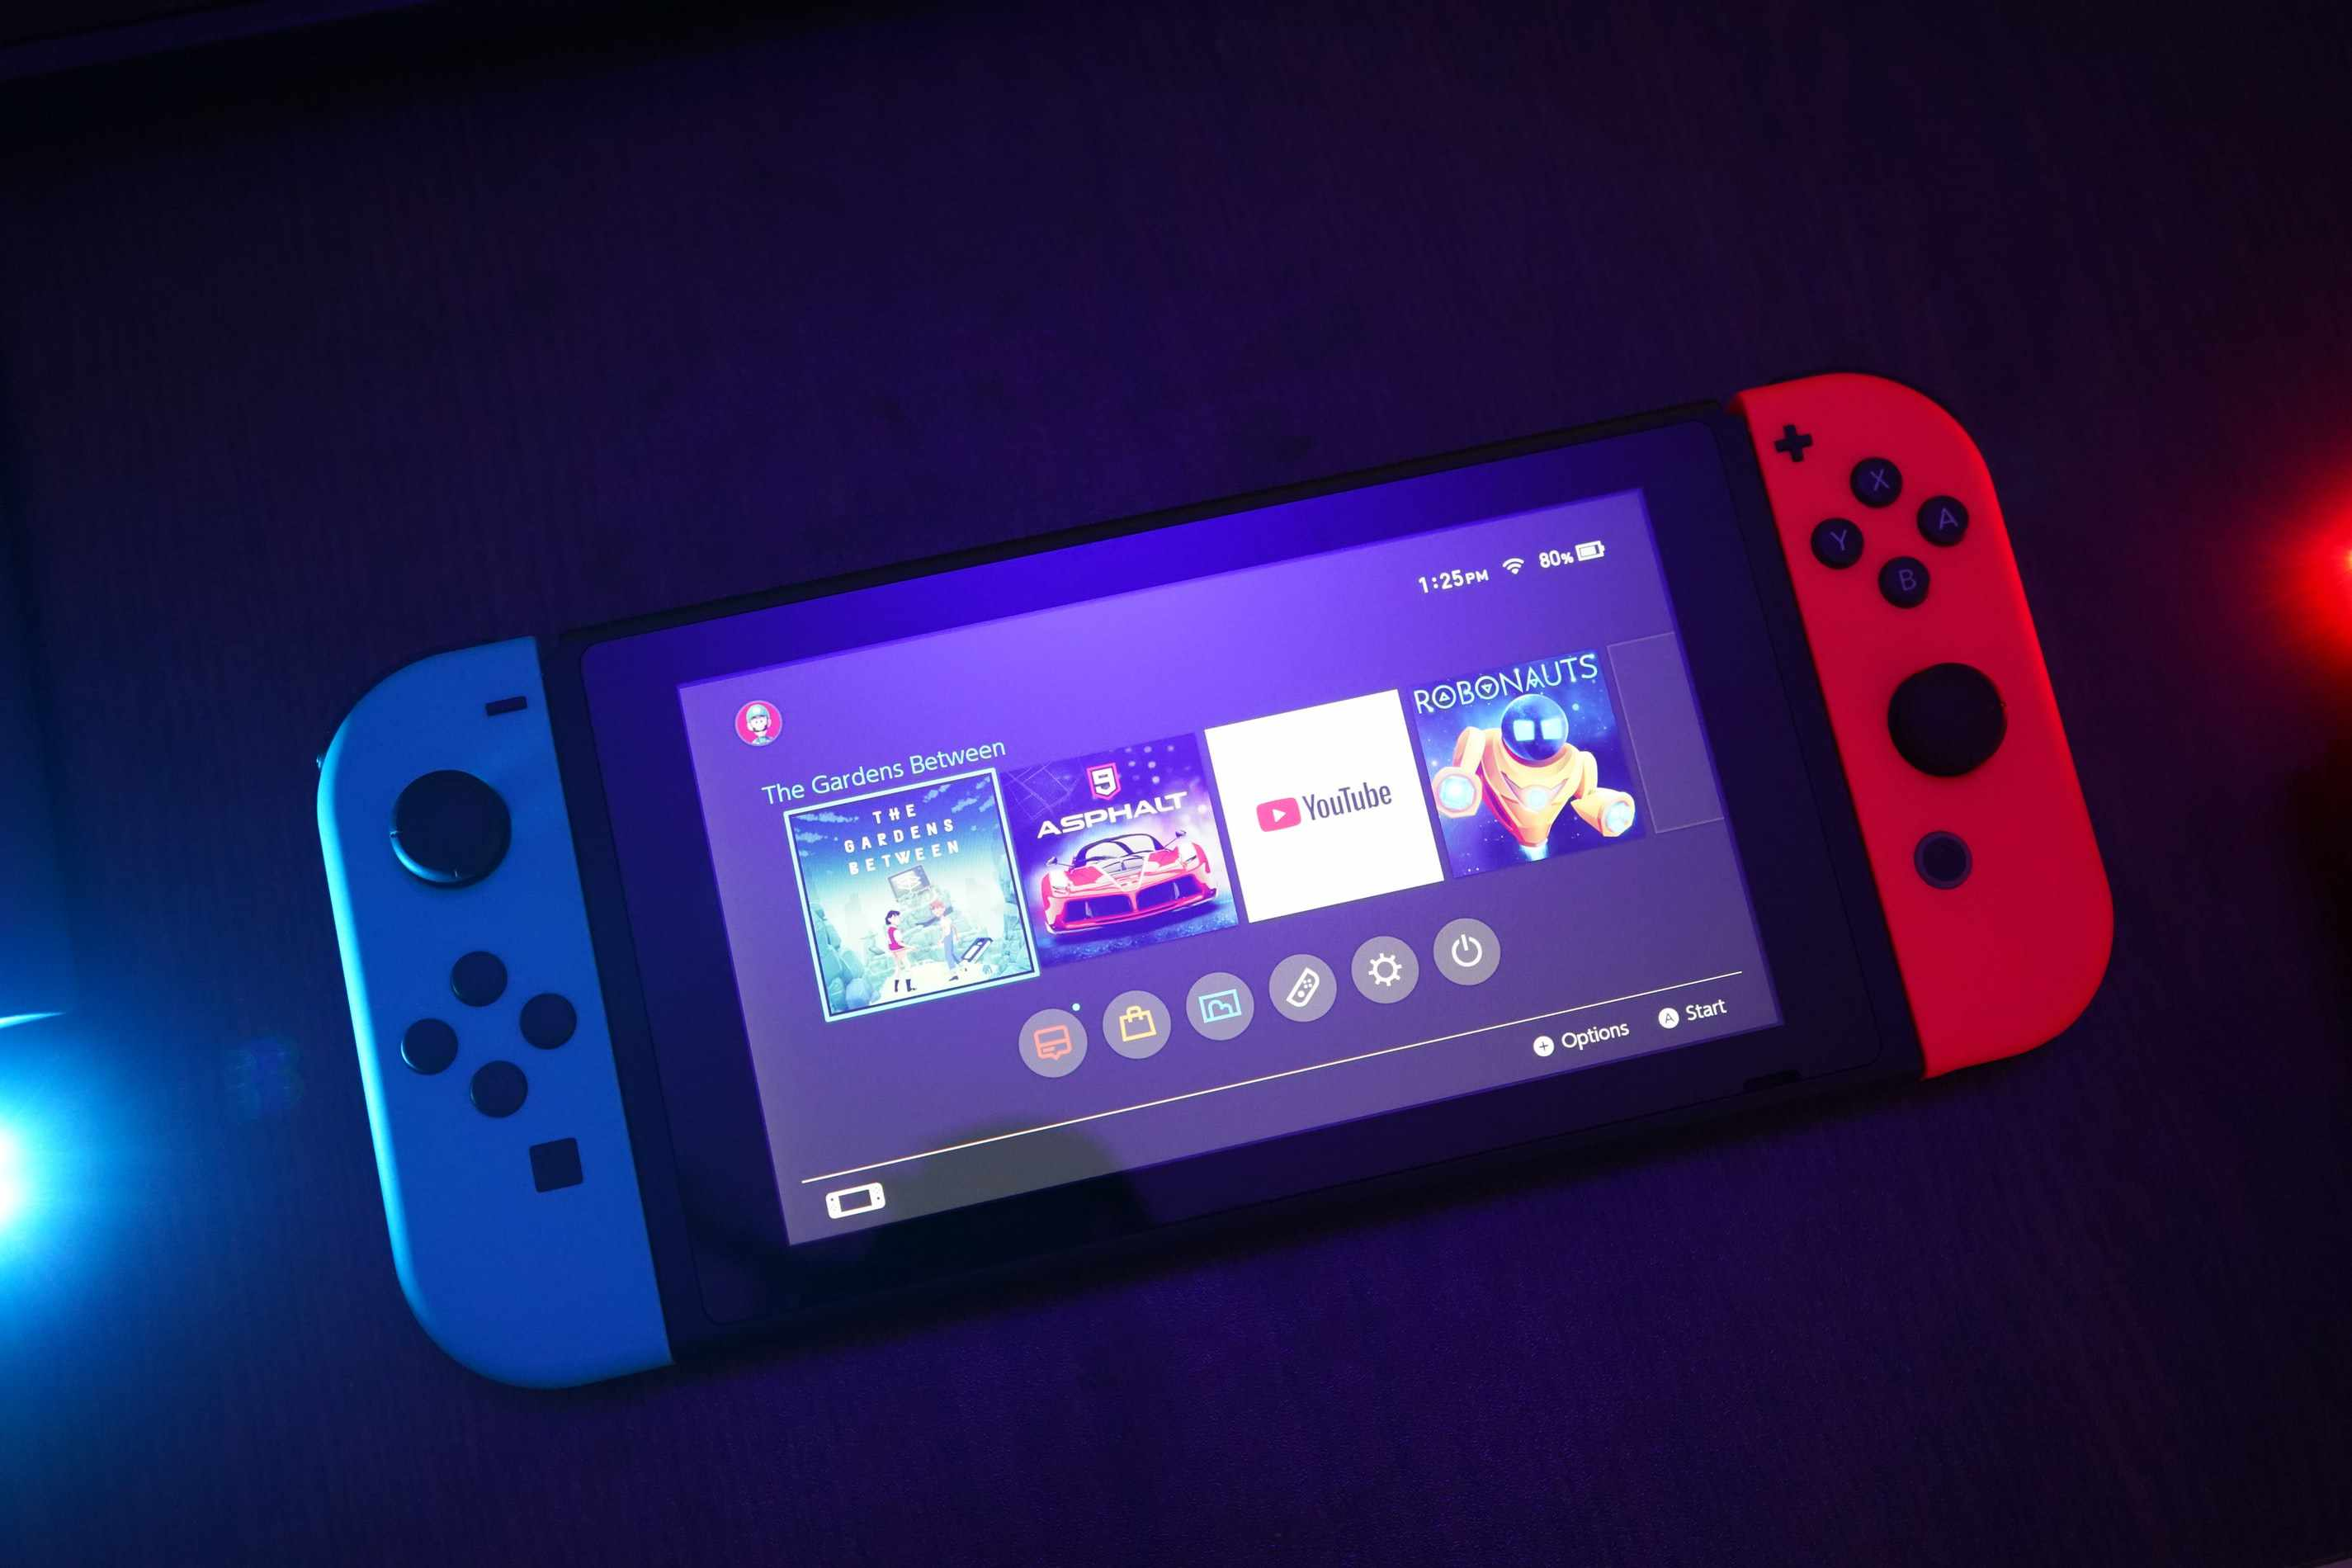 Nintendo Switch with The Gardens Between, YouTube, and other games on it